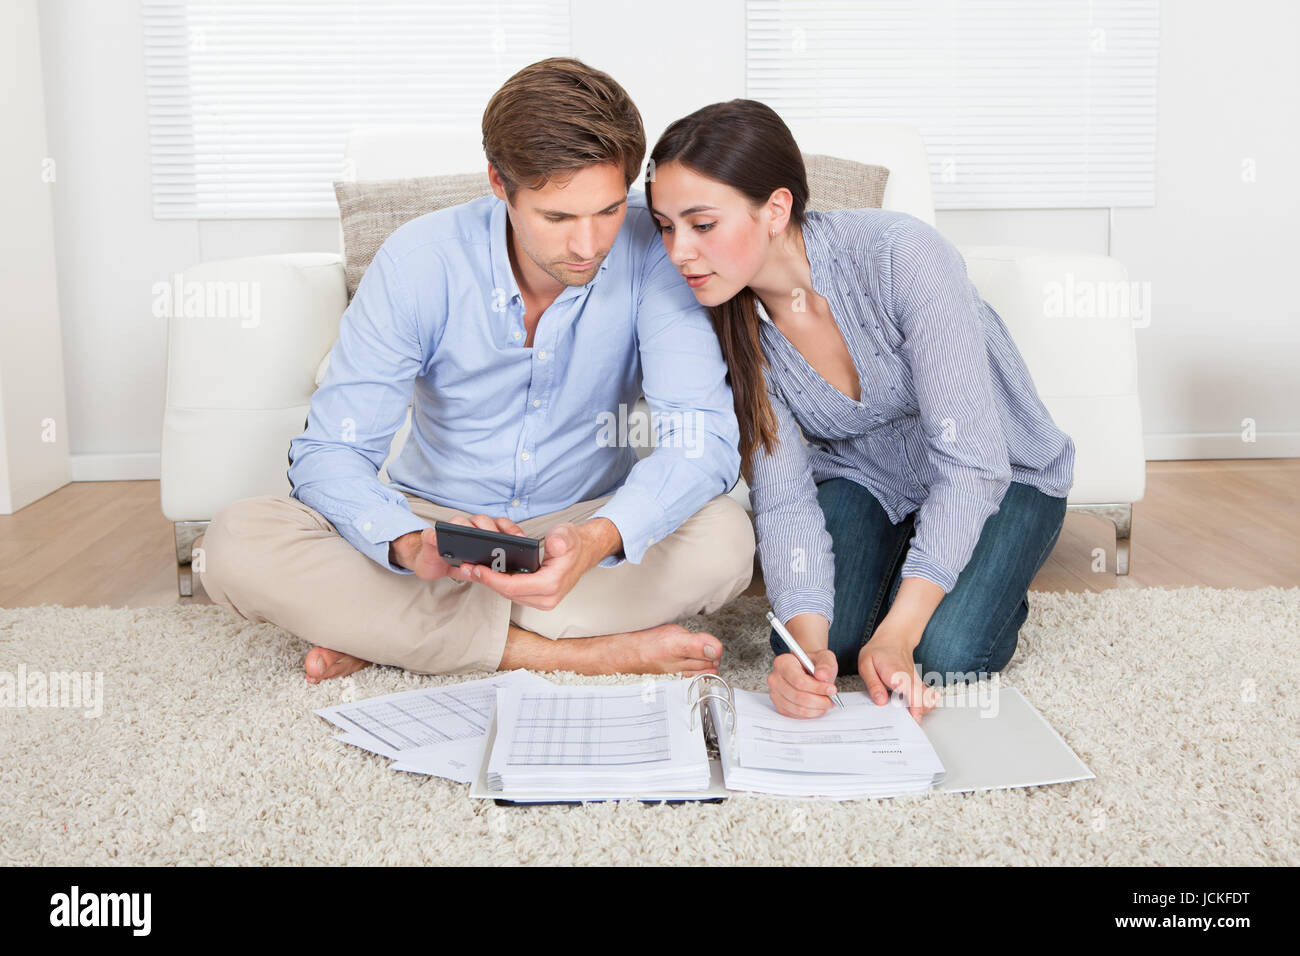 Superior Full Length Of Couple Calculating Budget In Living Room At Home